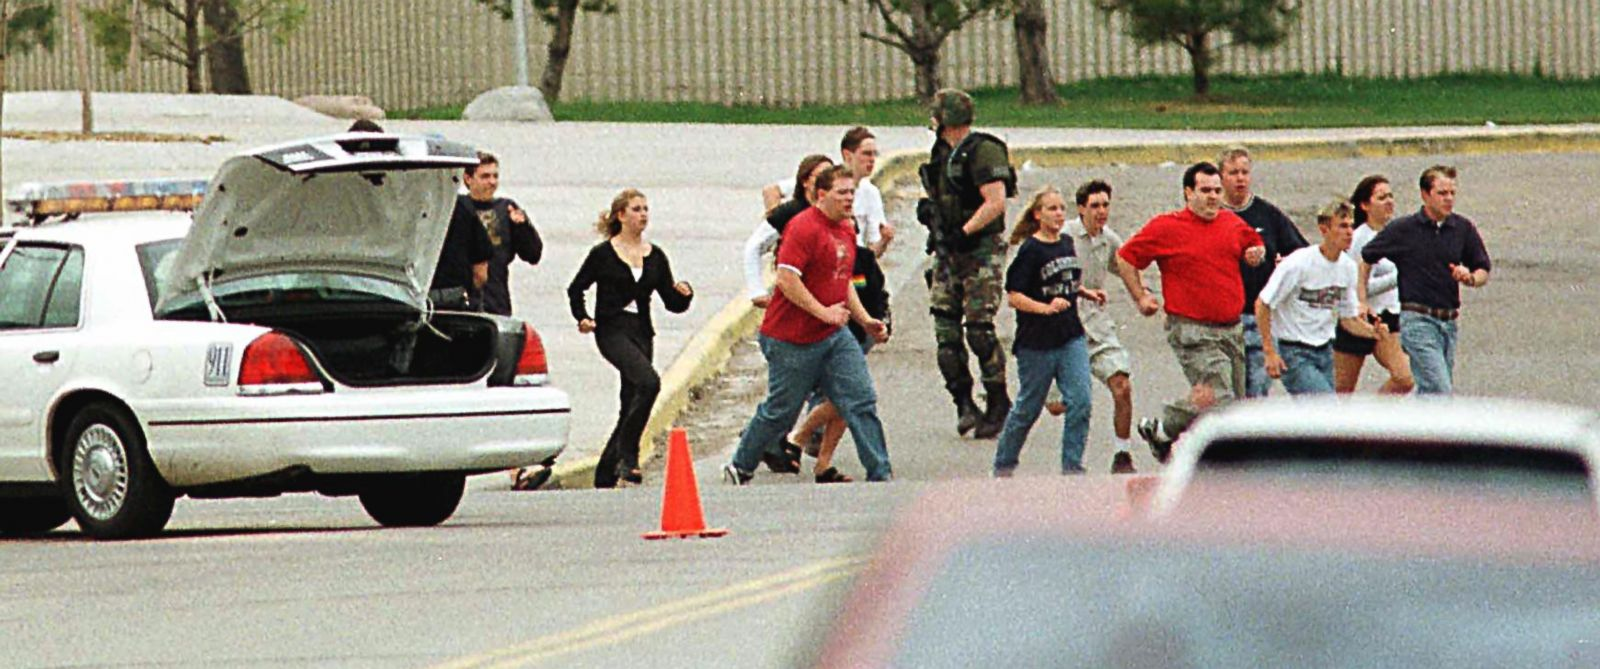 PHOTO: Students from Columbine High School run under cover from police in Littleton, Colo.